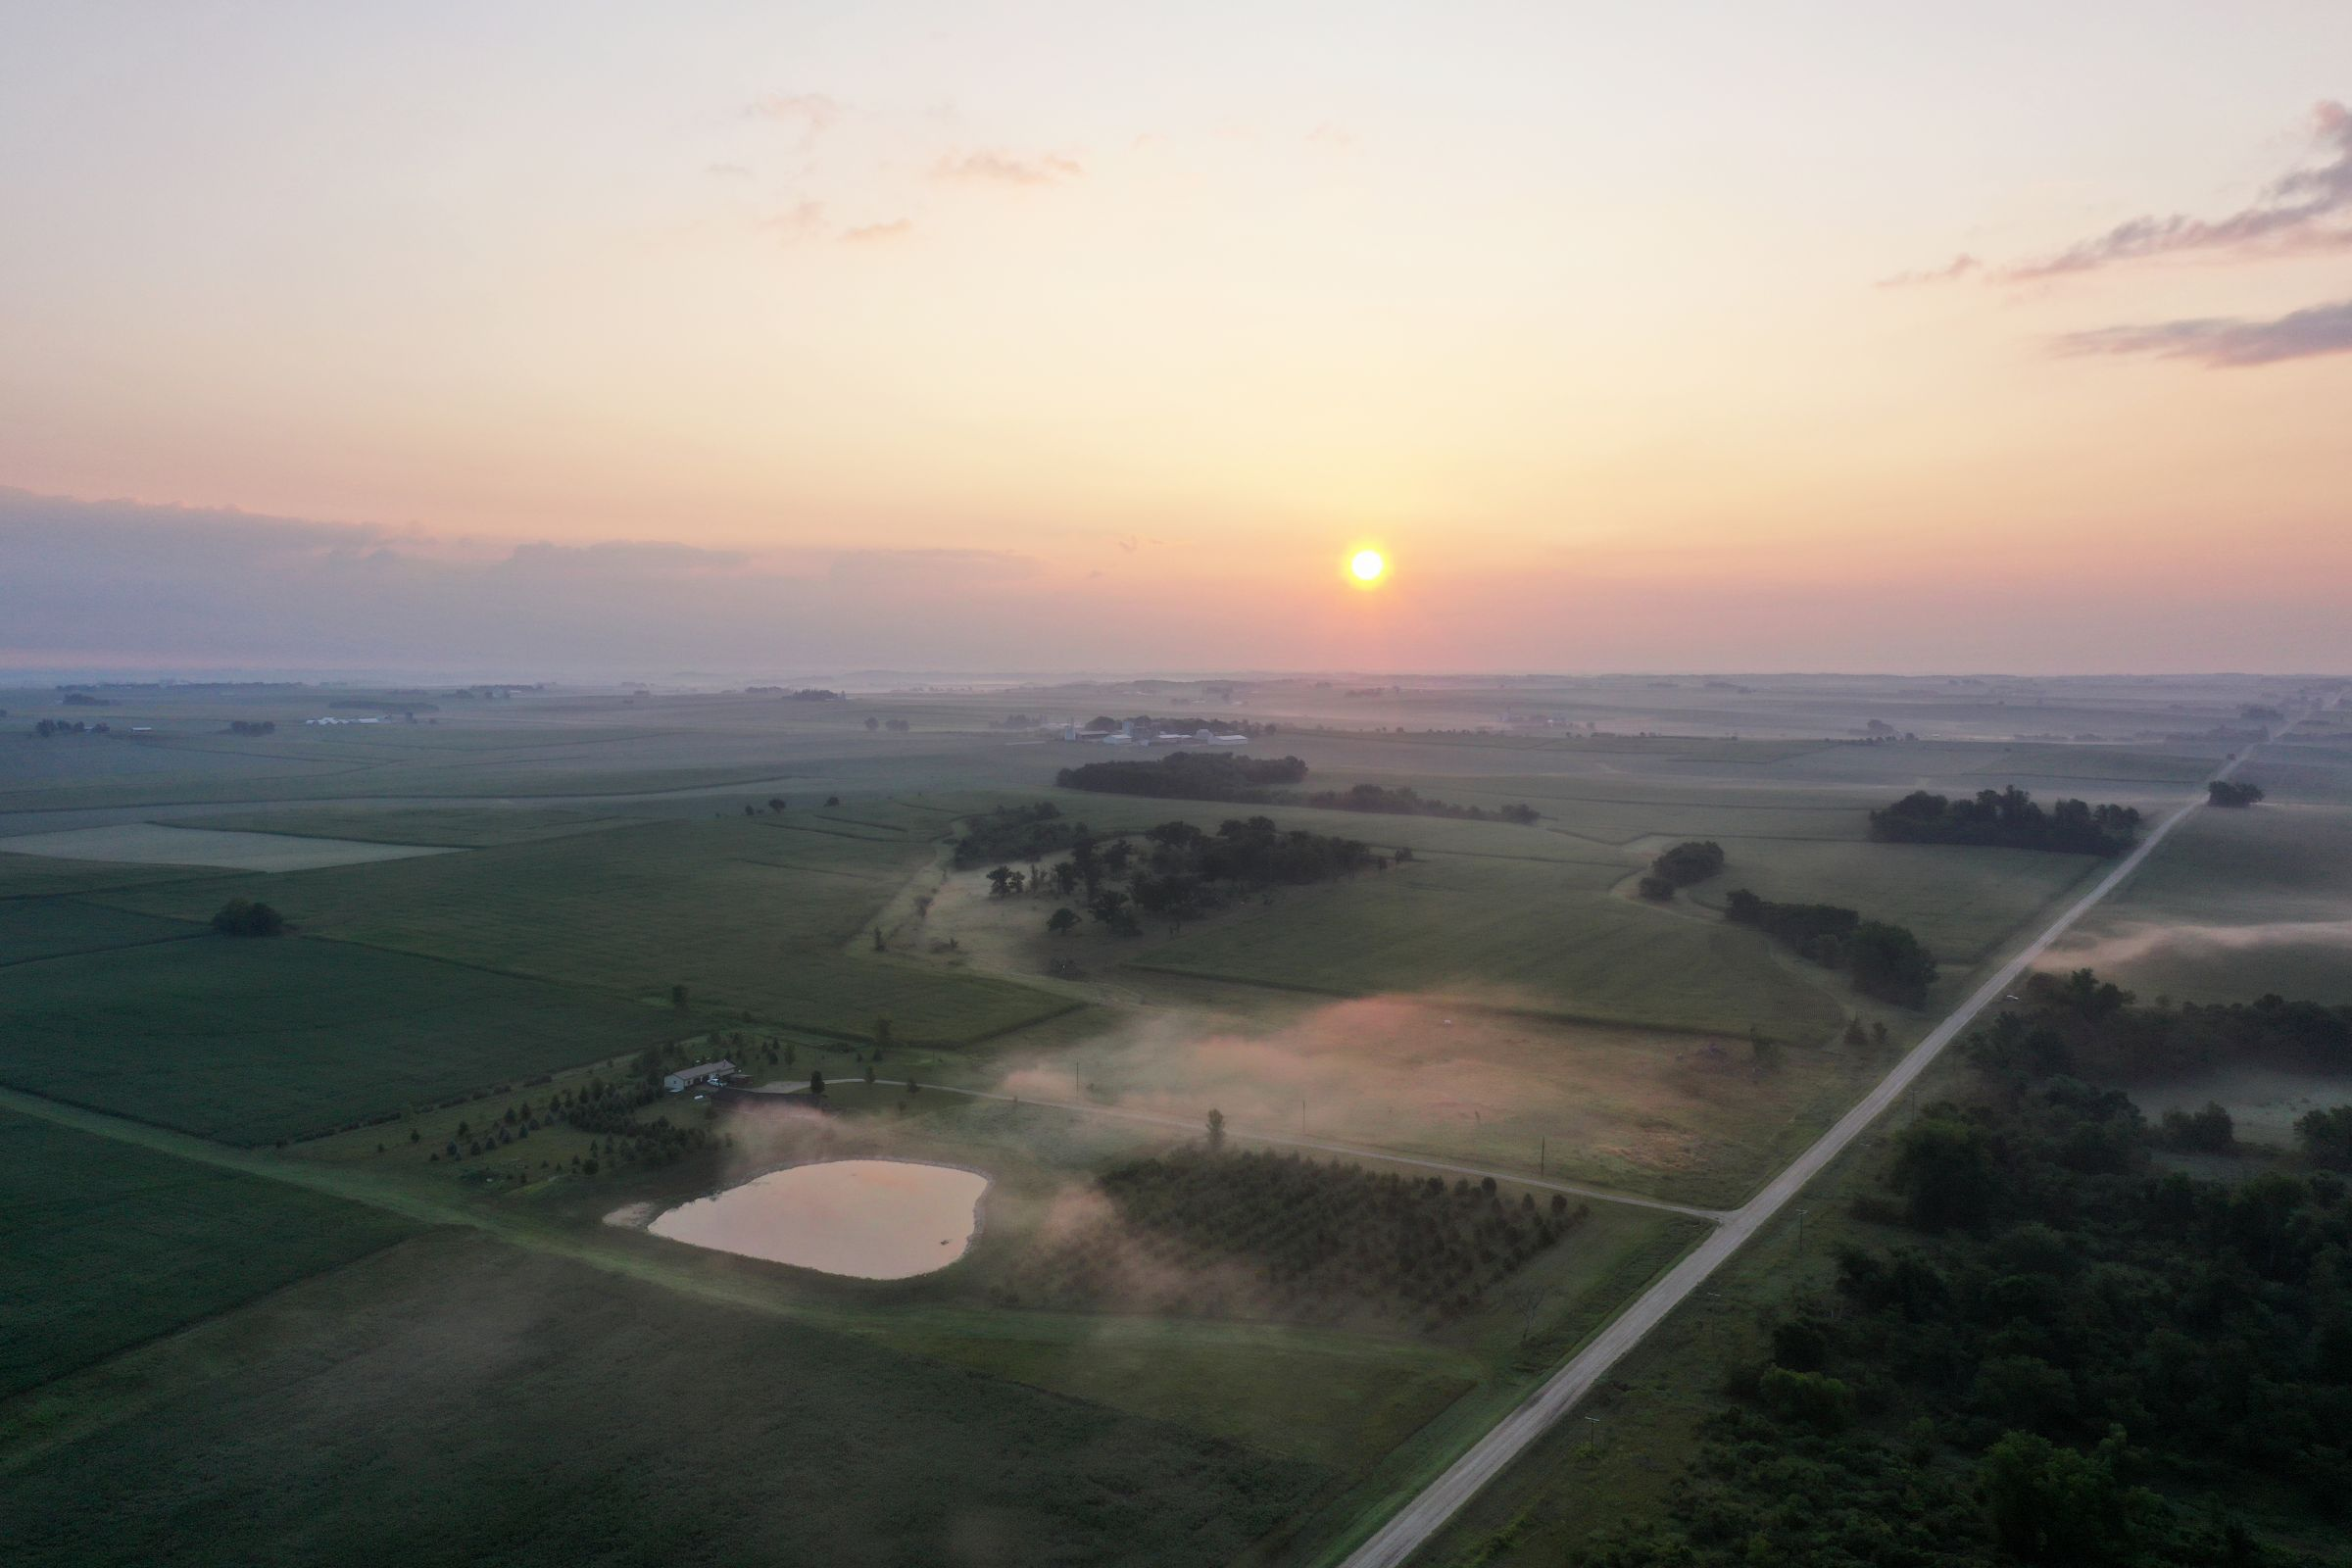 auctions-land-fayette-county-iowa-233-acres-listing-number-15645-0-2021-07-21-143927.JPG